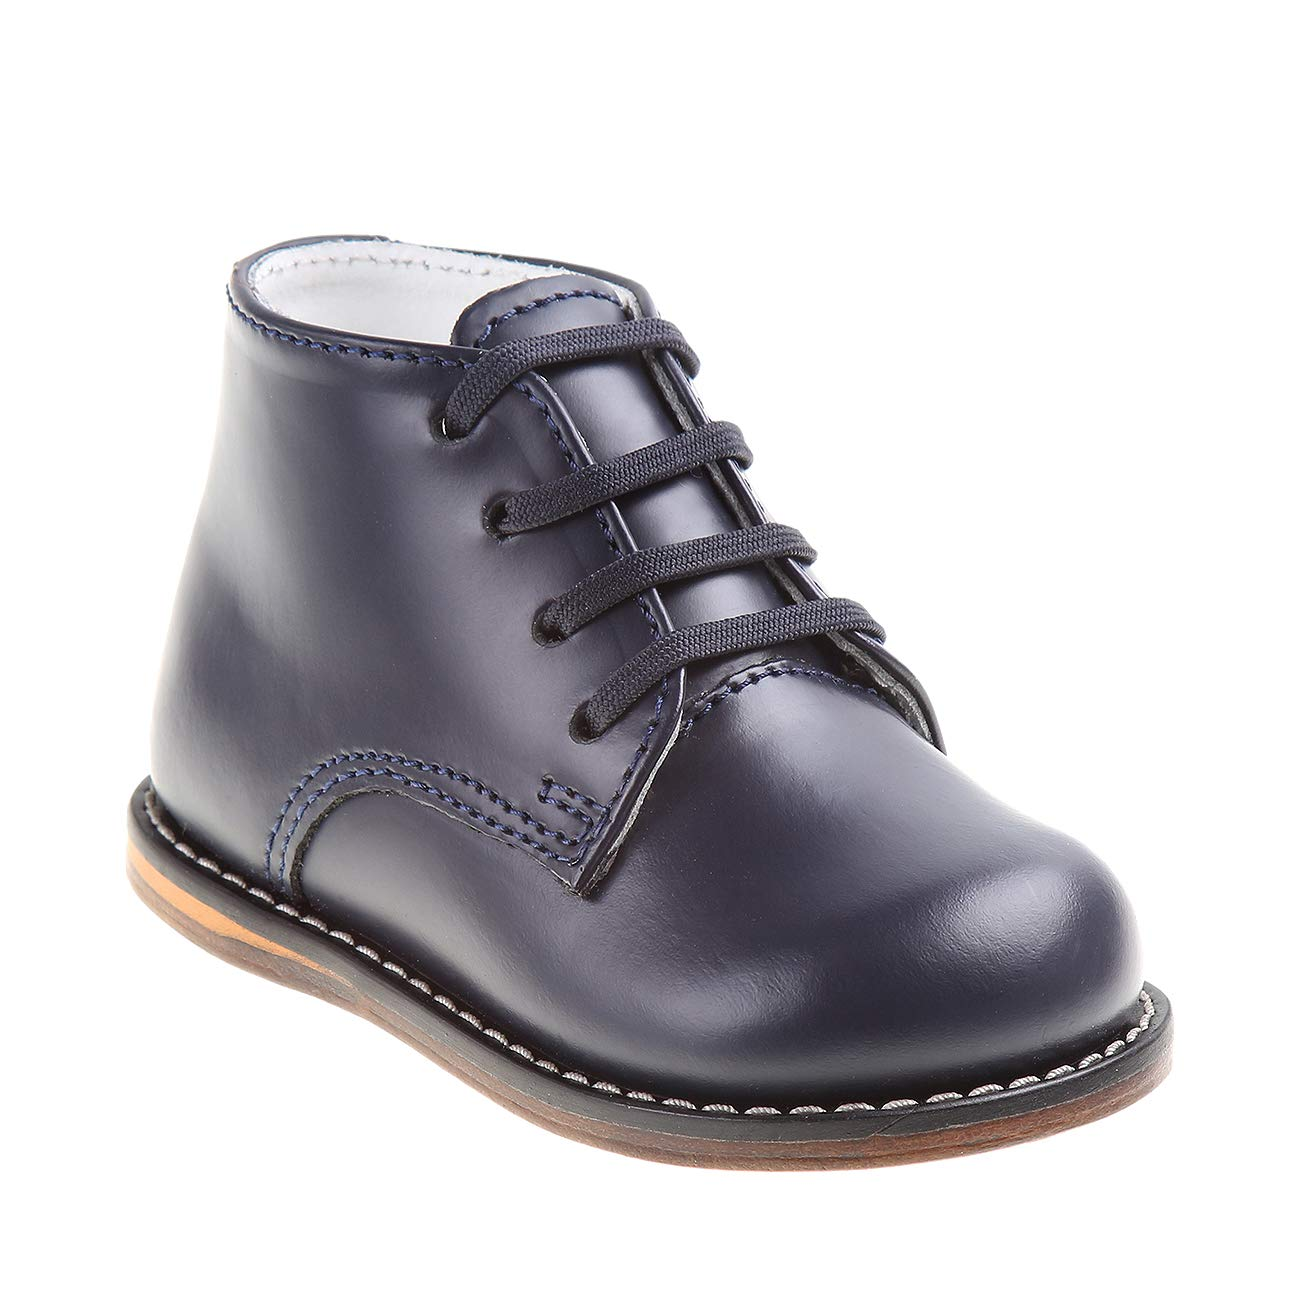 Josmo 2-8 Wide Walking Shoes (Navy, 5.5 Wide) by Josmo (Image #1)